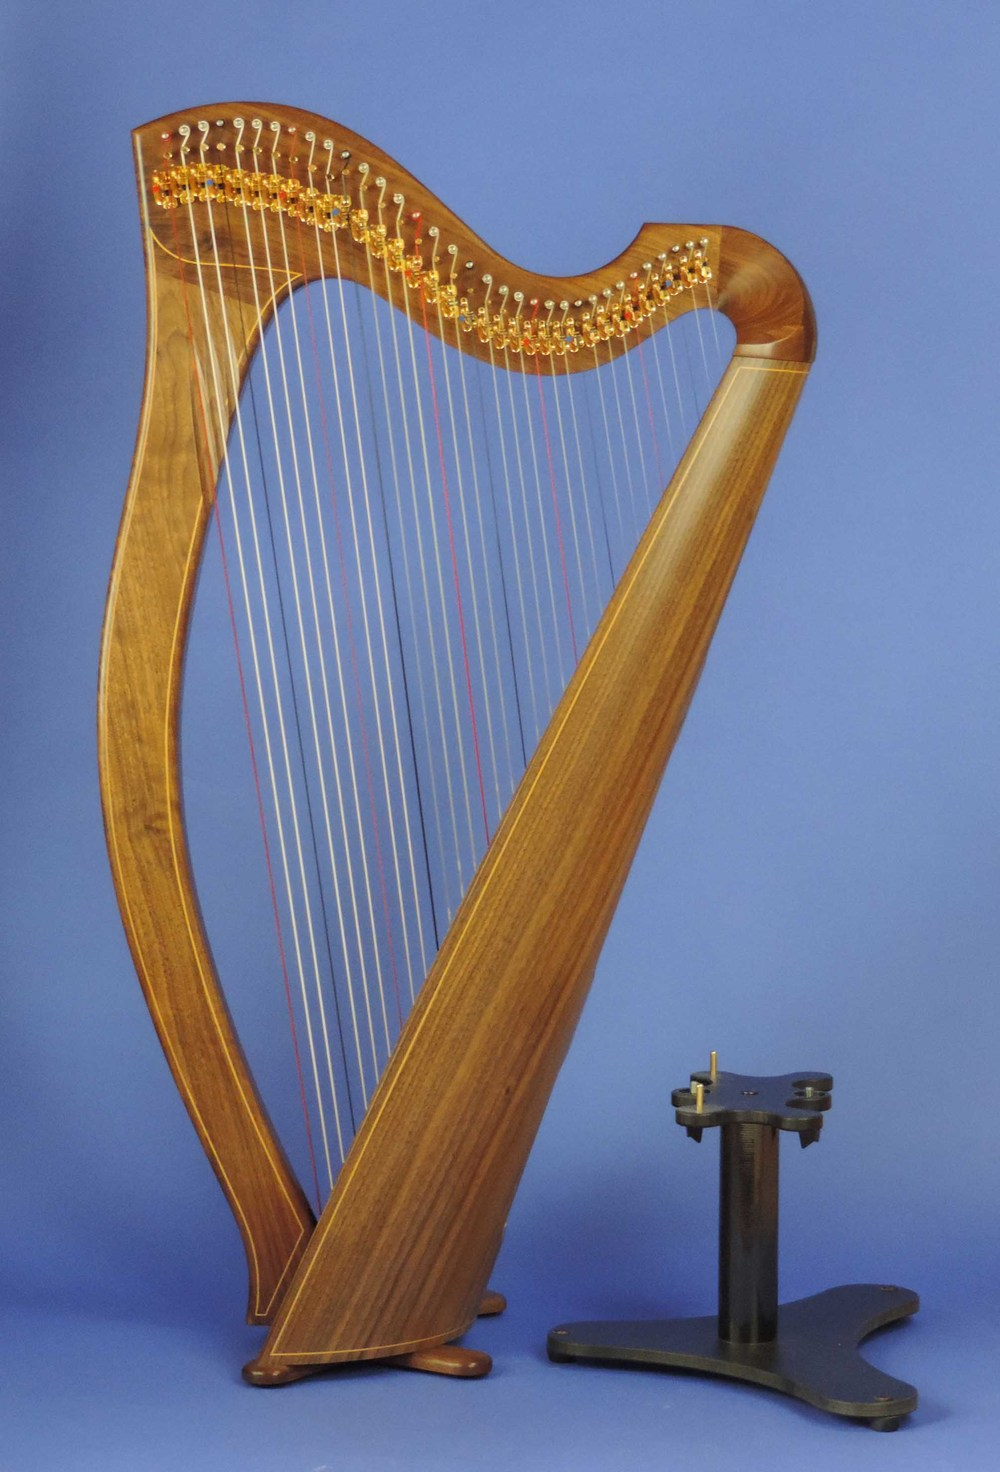 005 Harp with Stand.jpg